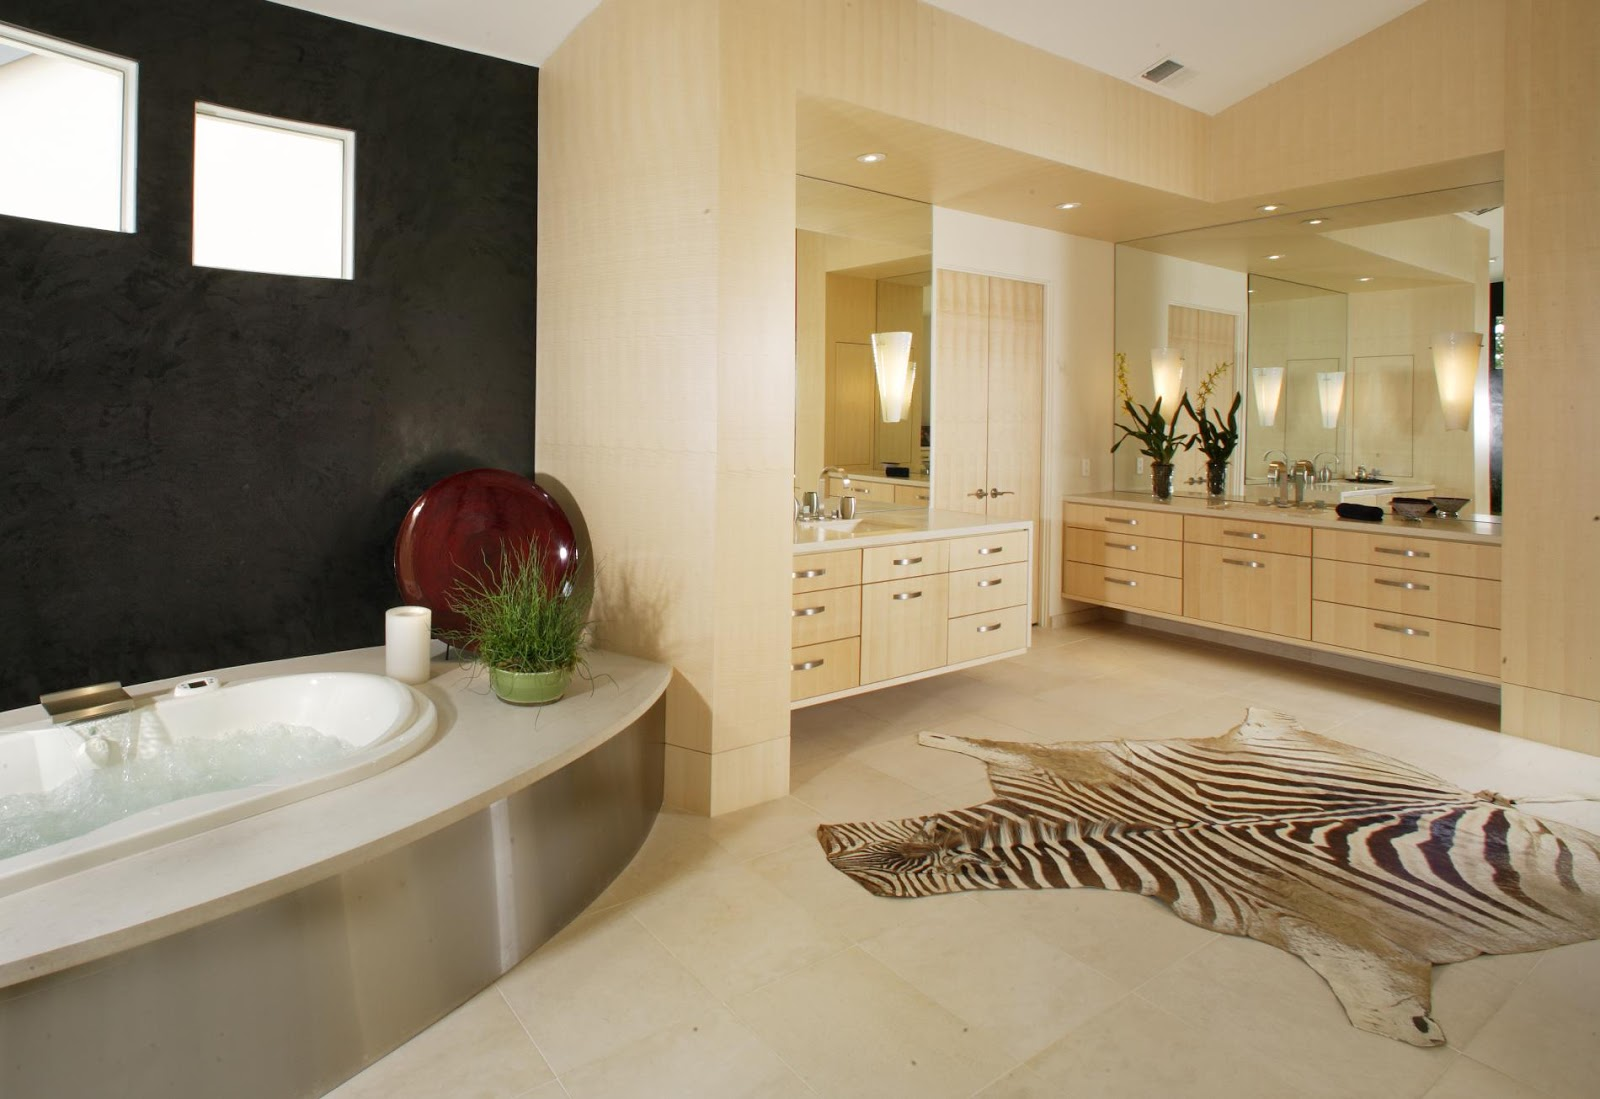 Modern house bathroom design modern house for House bathroom ideas